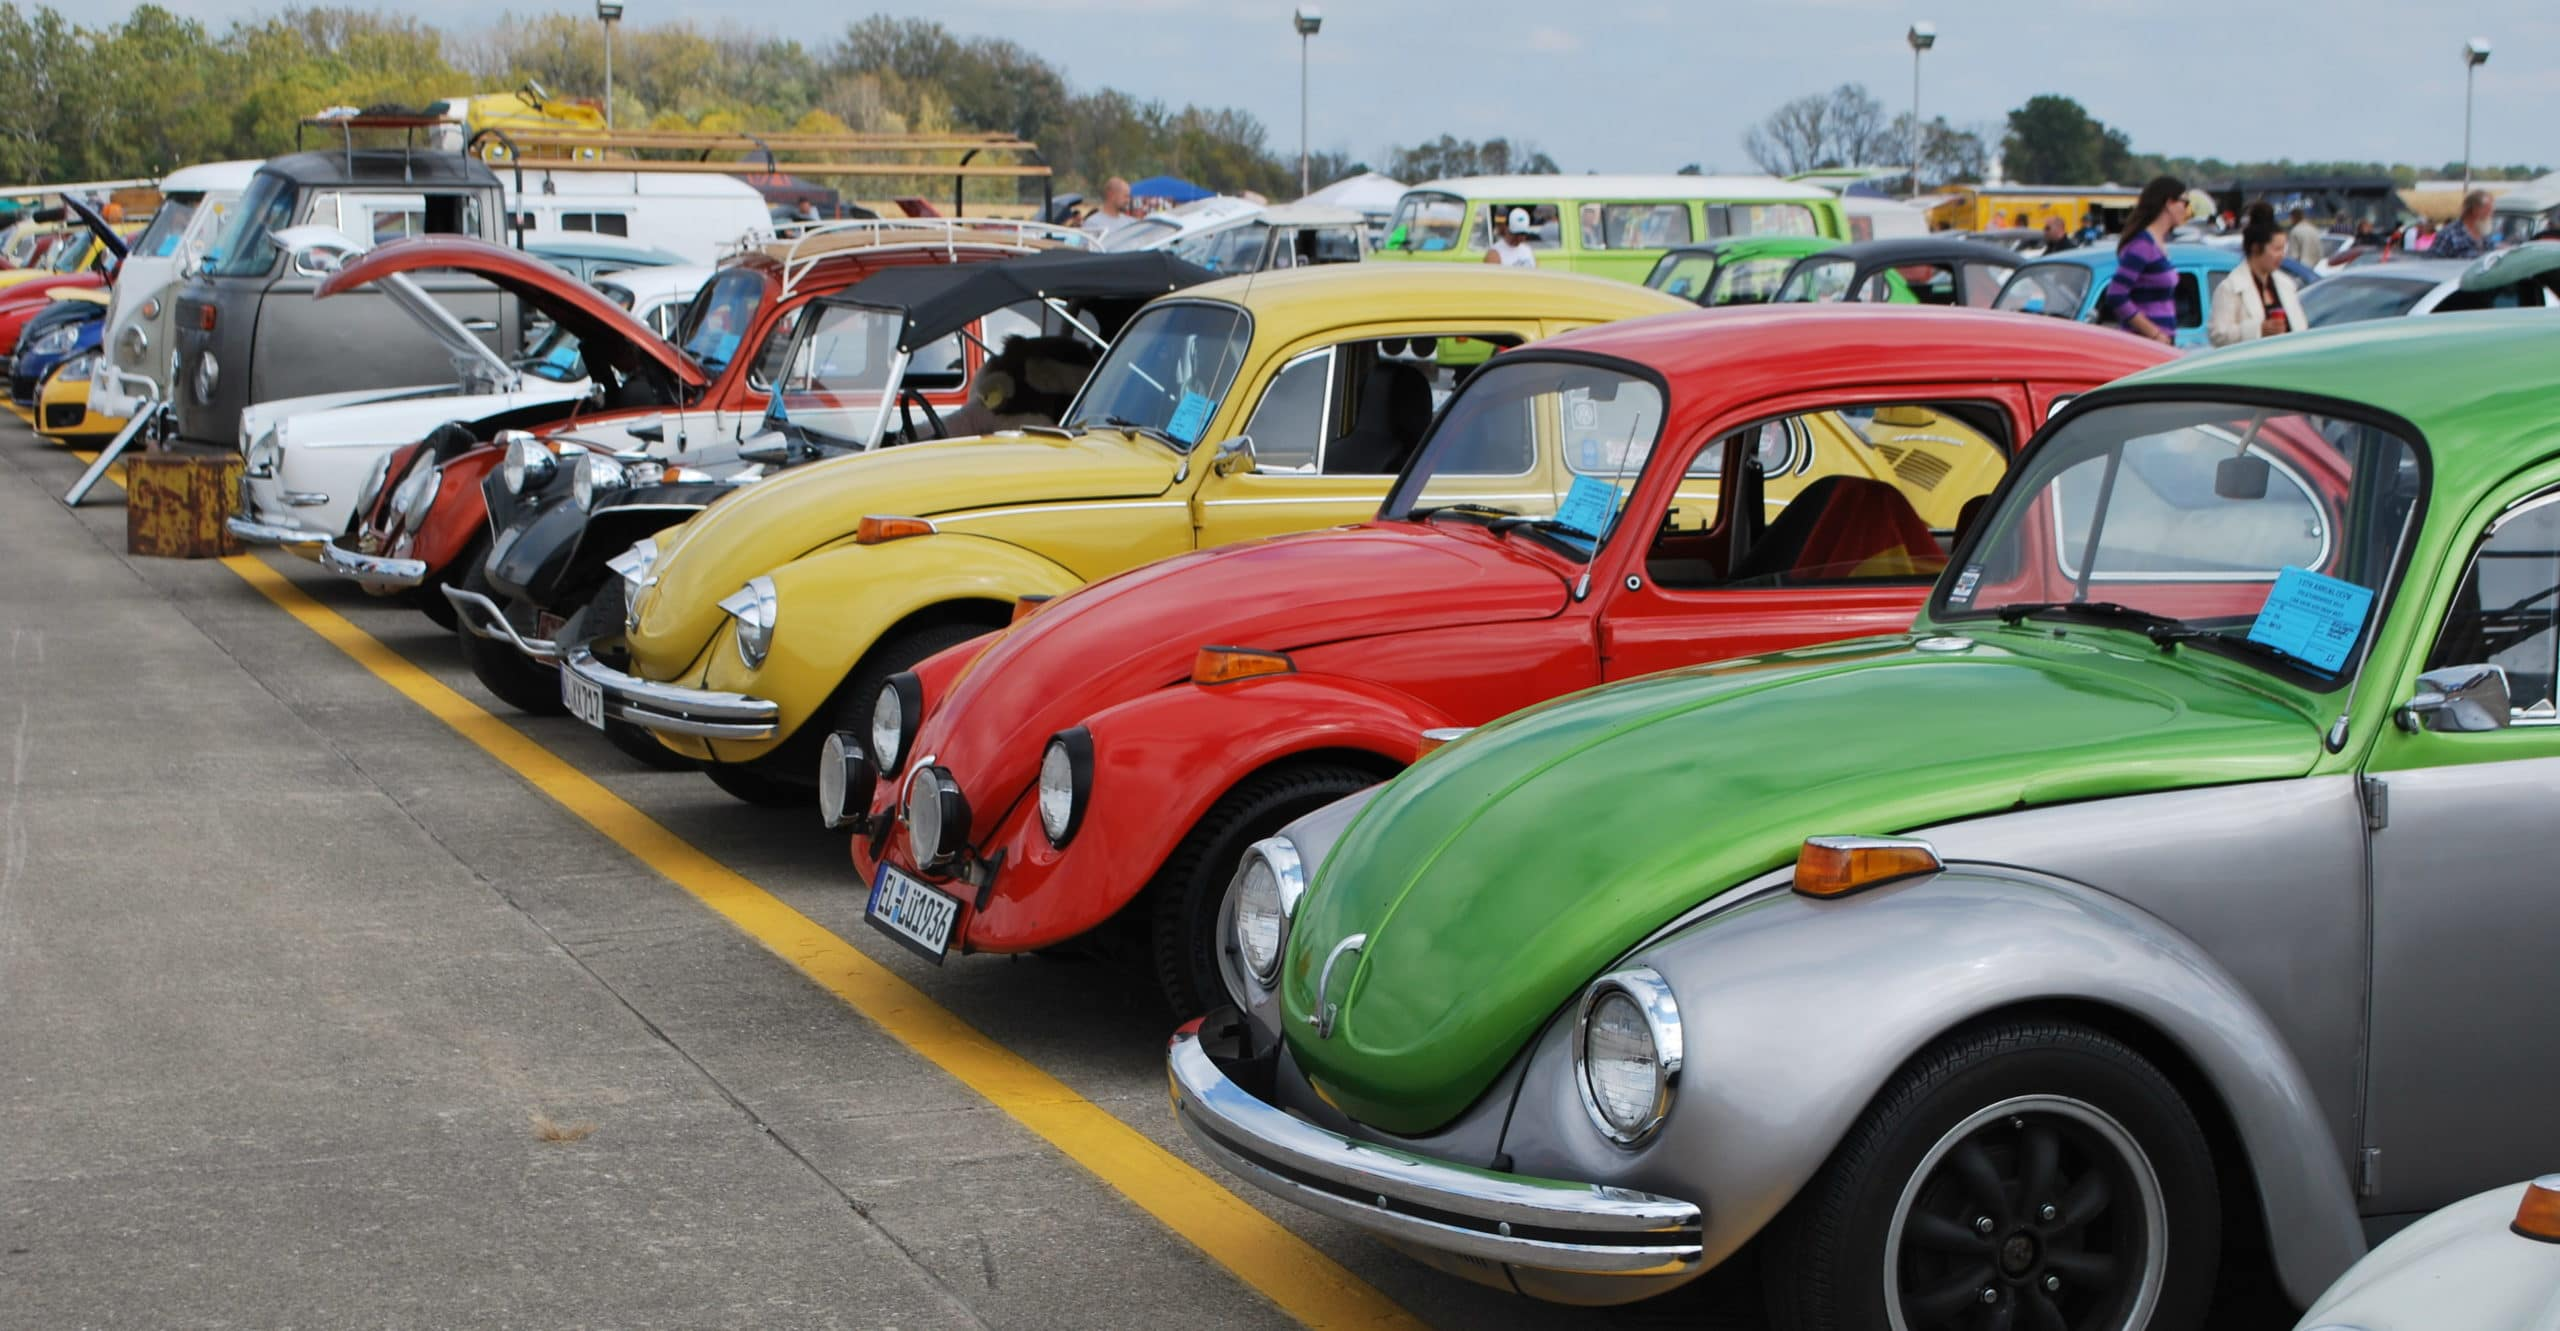 VW bugs lined up in parking lot